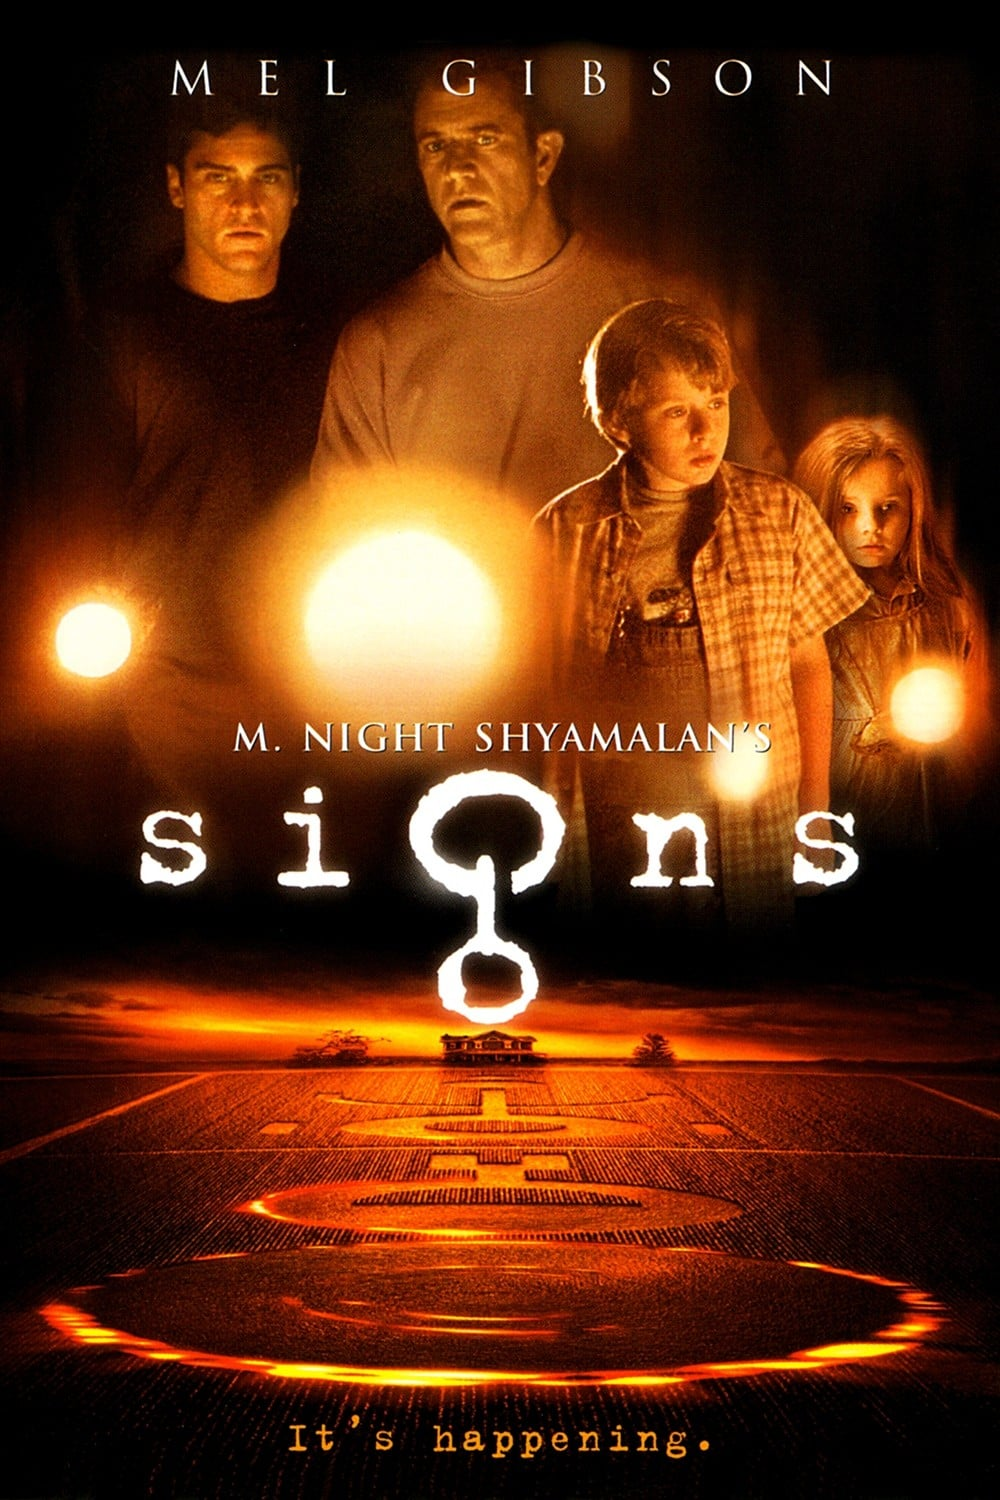 Signs (2002) - Directed by: M. Might ShyamalanStarring: Mel Gibson, Joaquin Phoenix, Rory Culkin, Abigail Breslin Rated: PG13Running Time: 1h 46mTMM Score: 4 stars out of 5STRENGTHS: Theme, Acting, StorytellingWEAKNESSES: Heavy Handedness